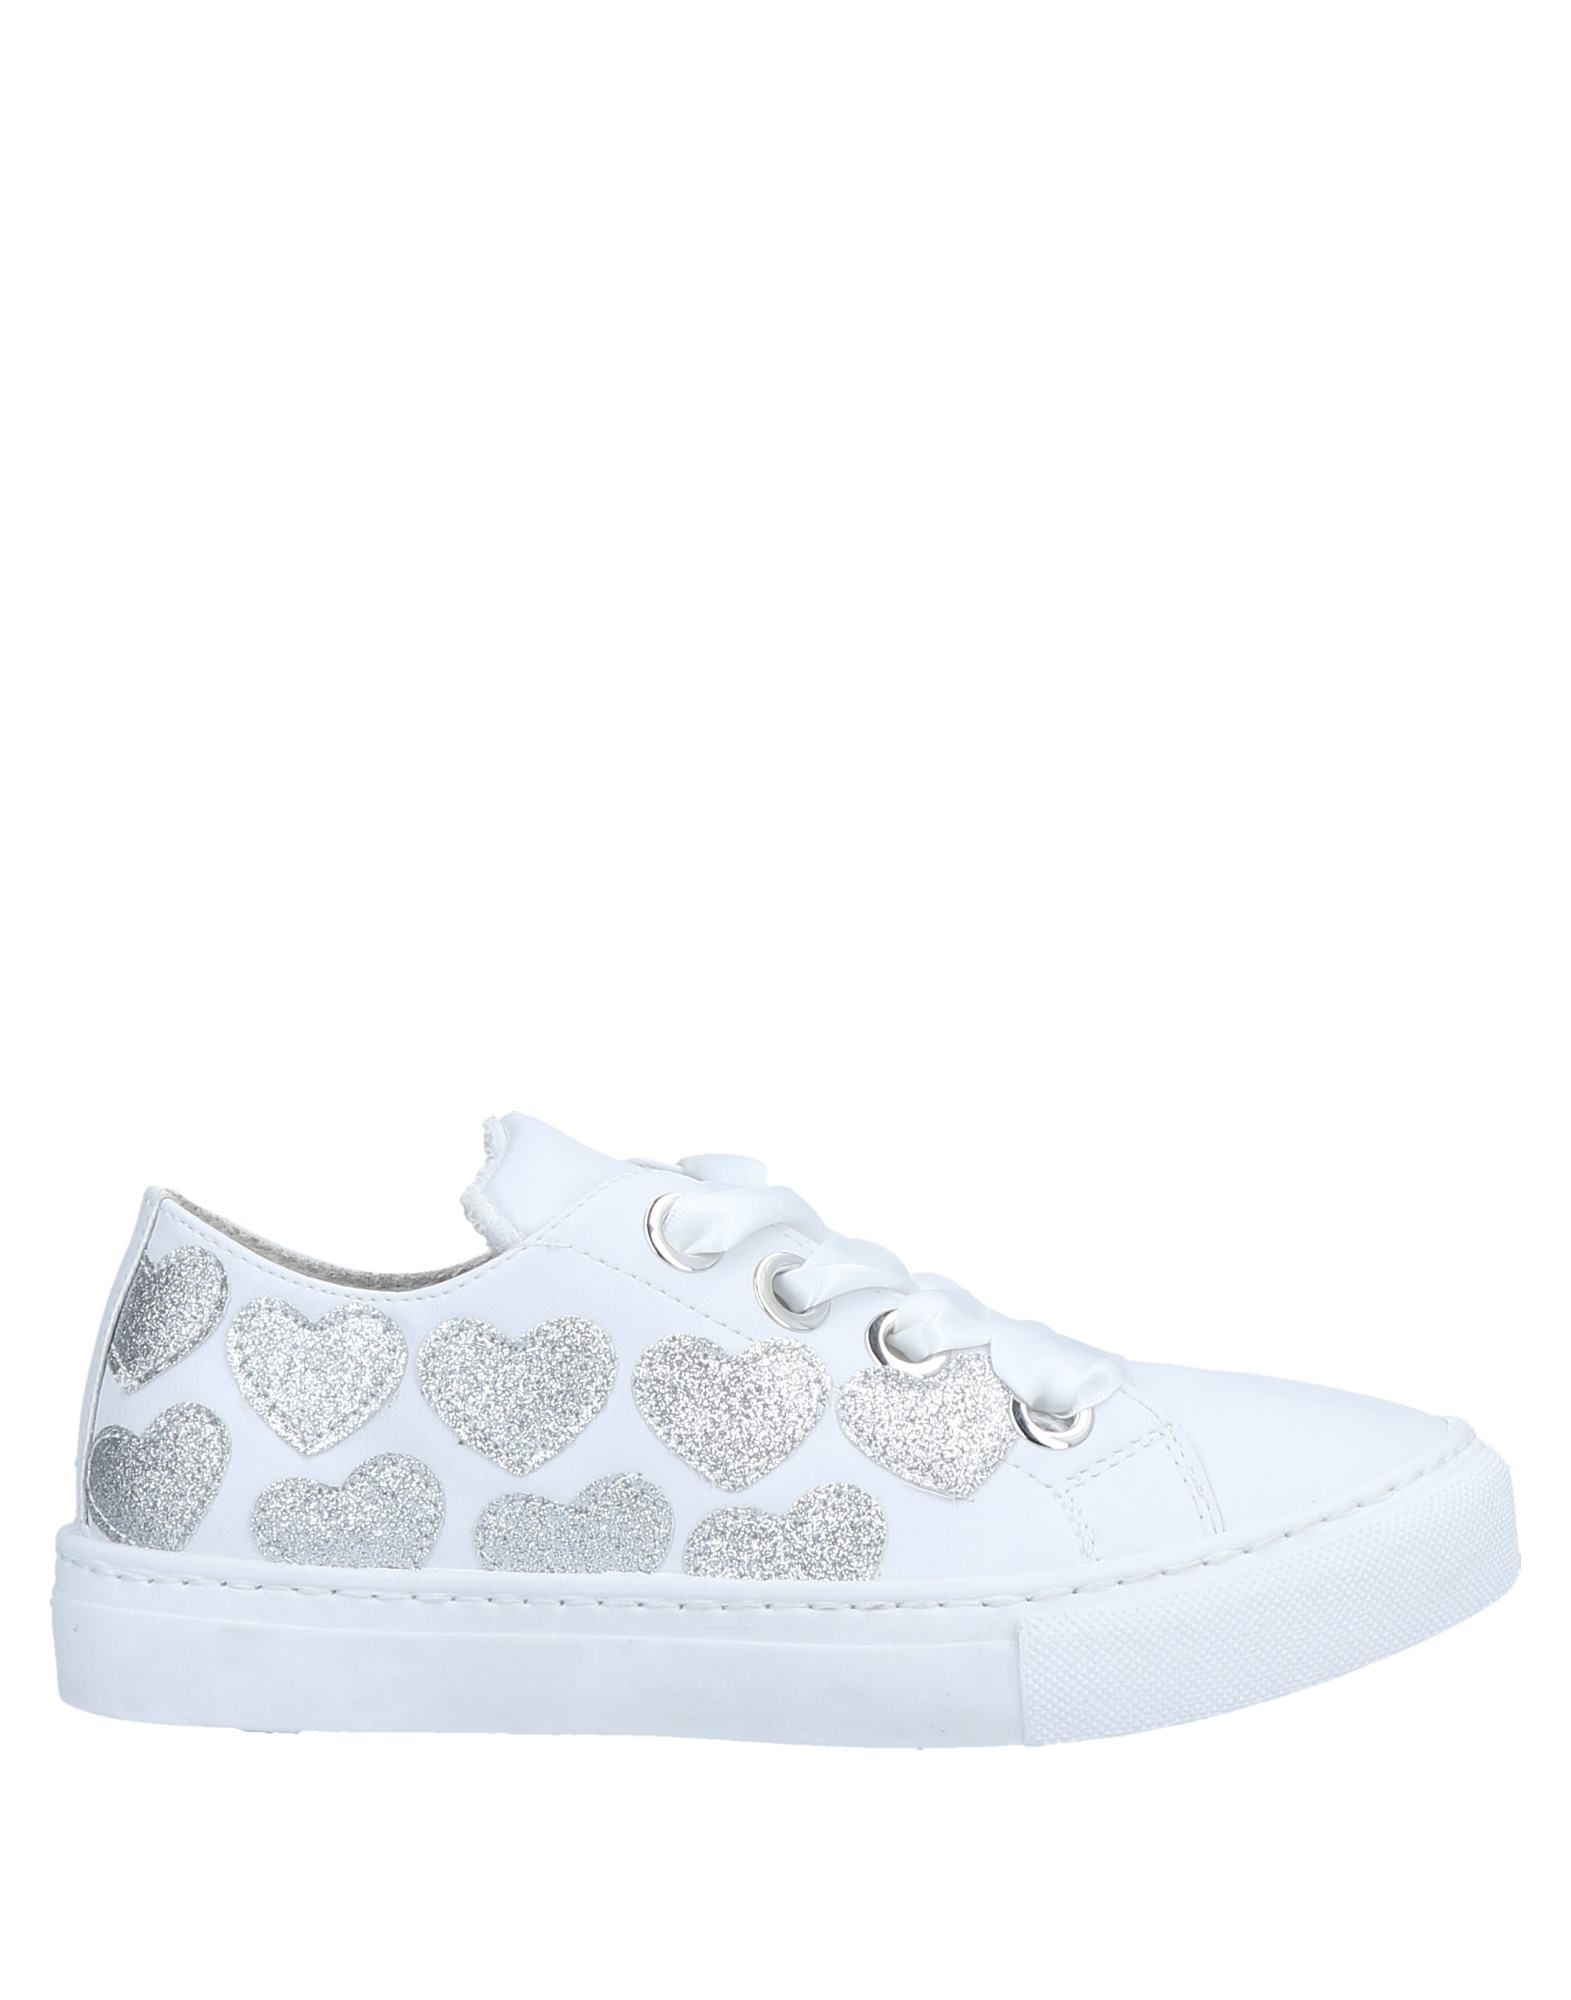 Ovye' By Women Cristina Lucchi Sneakers - Women By Ovye' By Cristina Lucchi Sneakers online on  Canada - 11563822MT d95a97